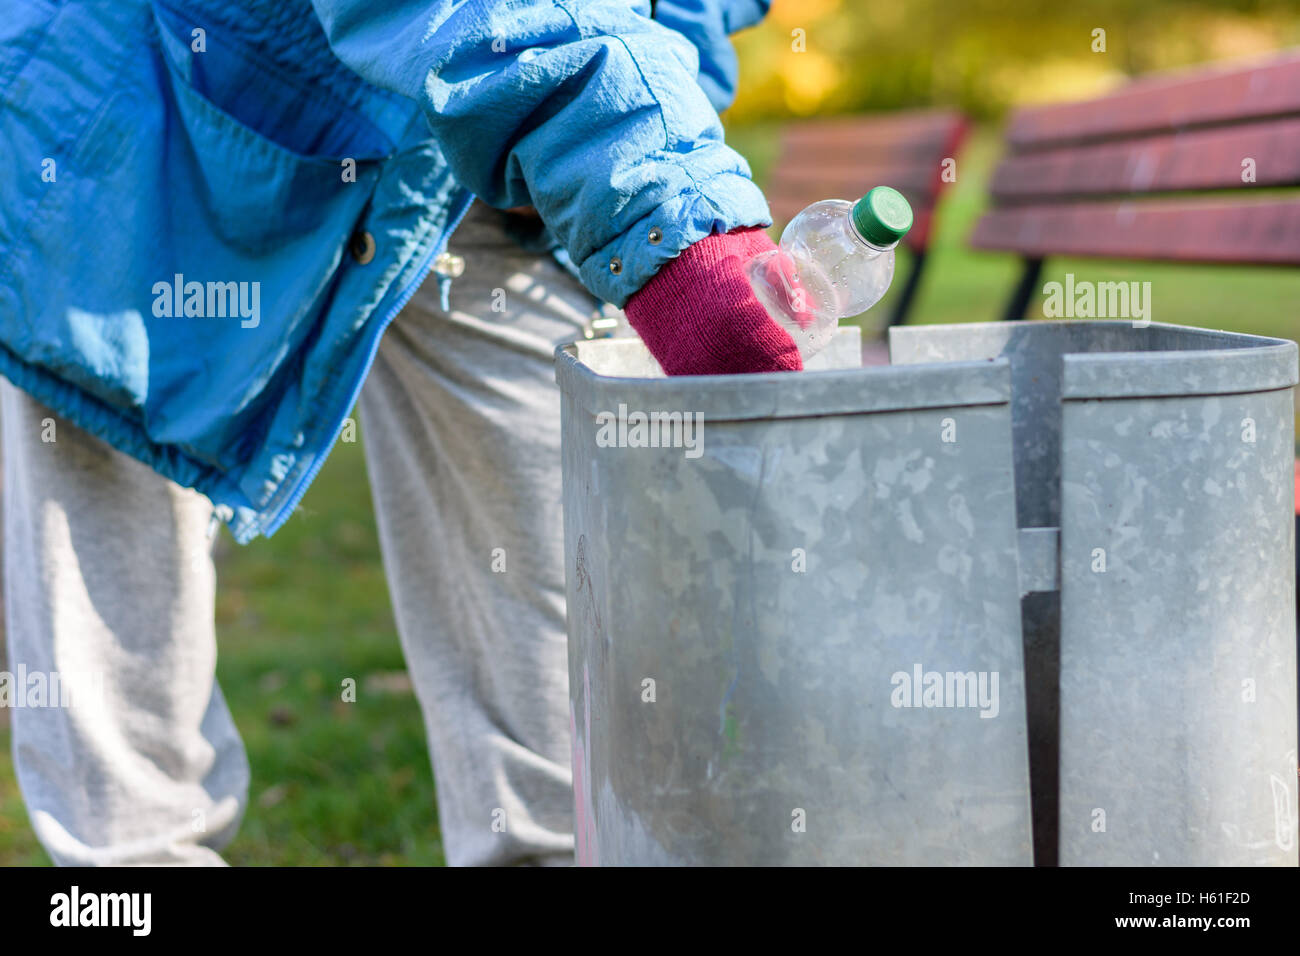 Indigent senior woman scrounging through a bin for bottle on an urban autumn street in a concept of homelessness - Stock Image